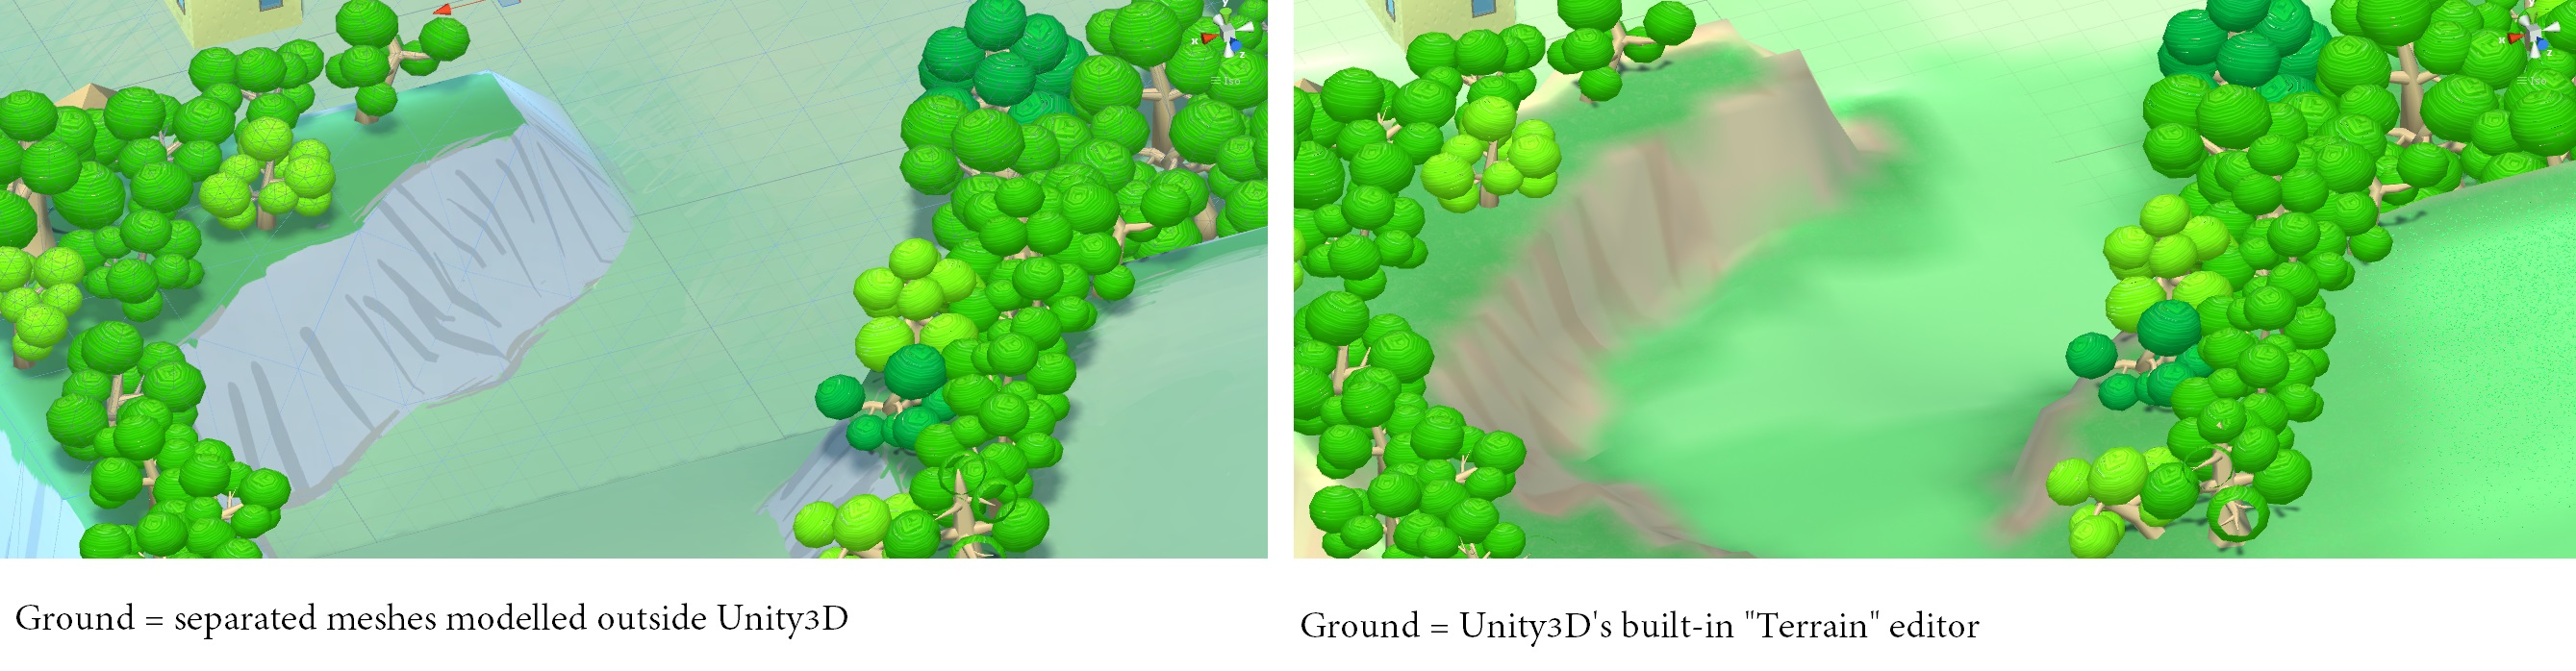 "Generally, using Unity3D's ""Terrain"" system yields comparable visual results..."